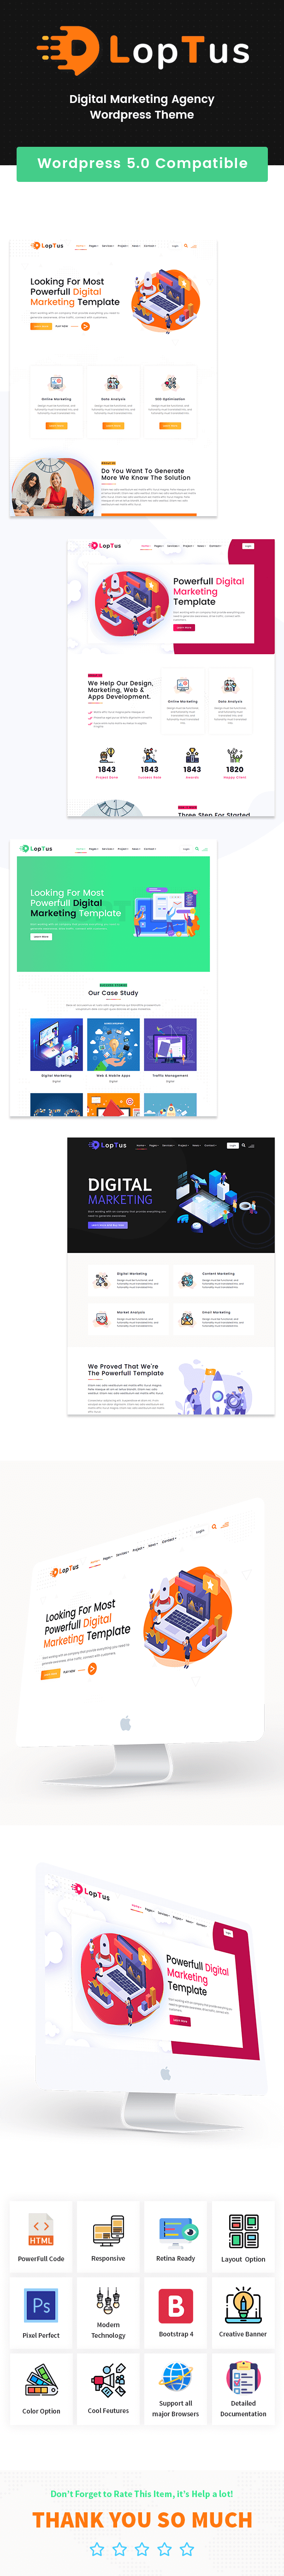 Loptus - Digital Marketing Agency WordPress Theme - 4